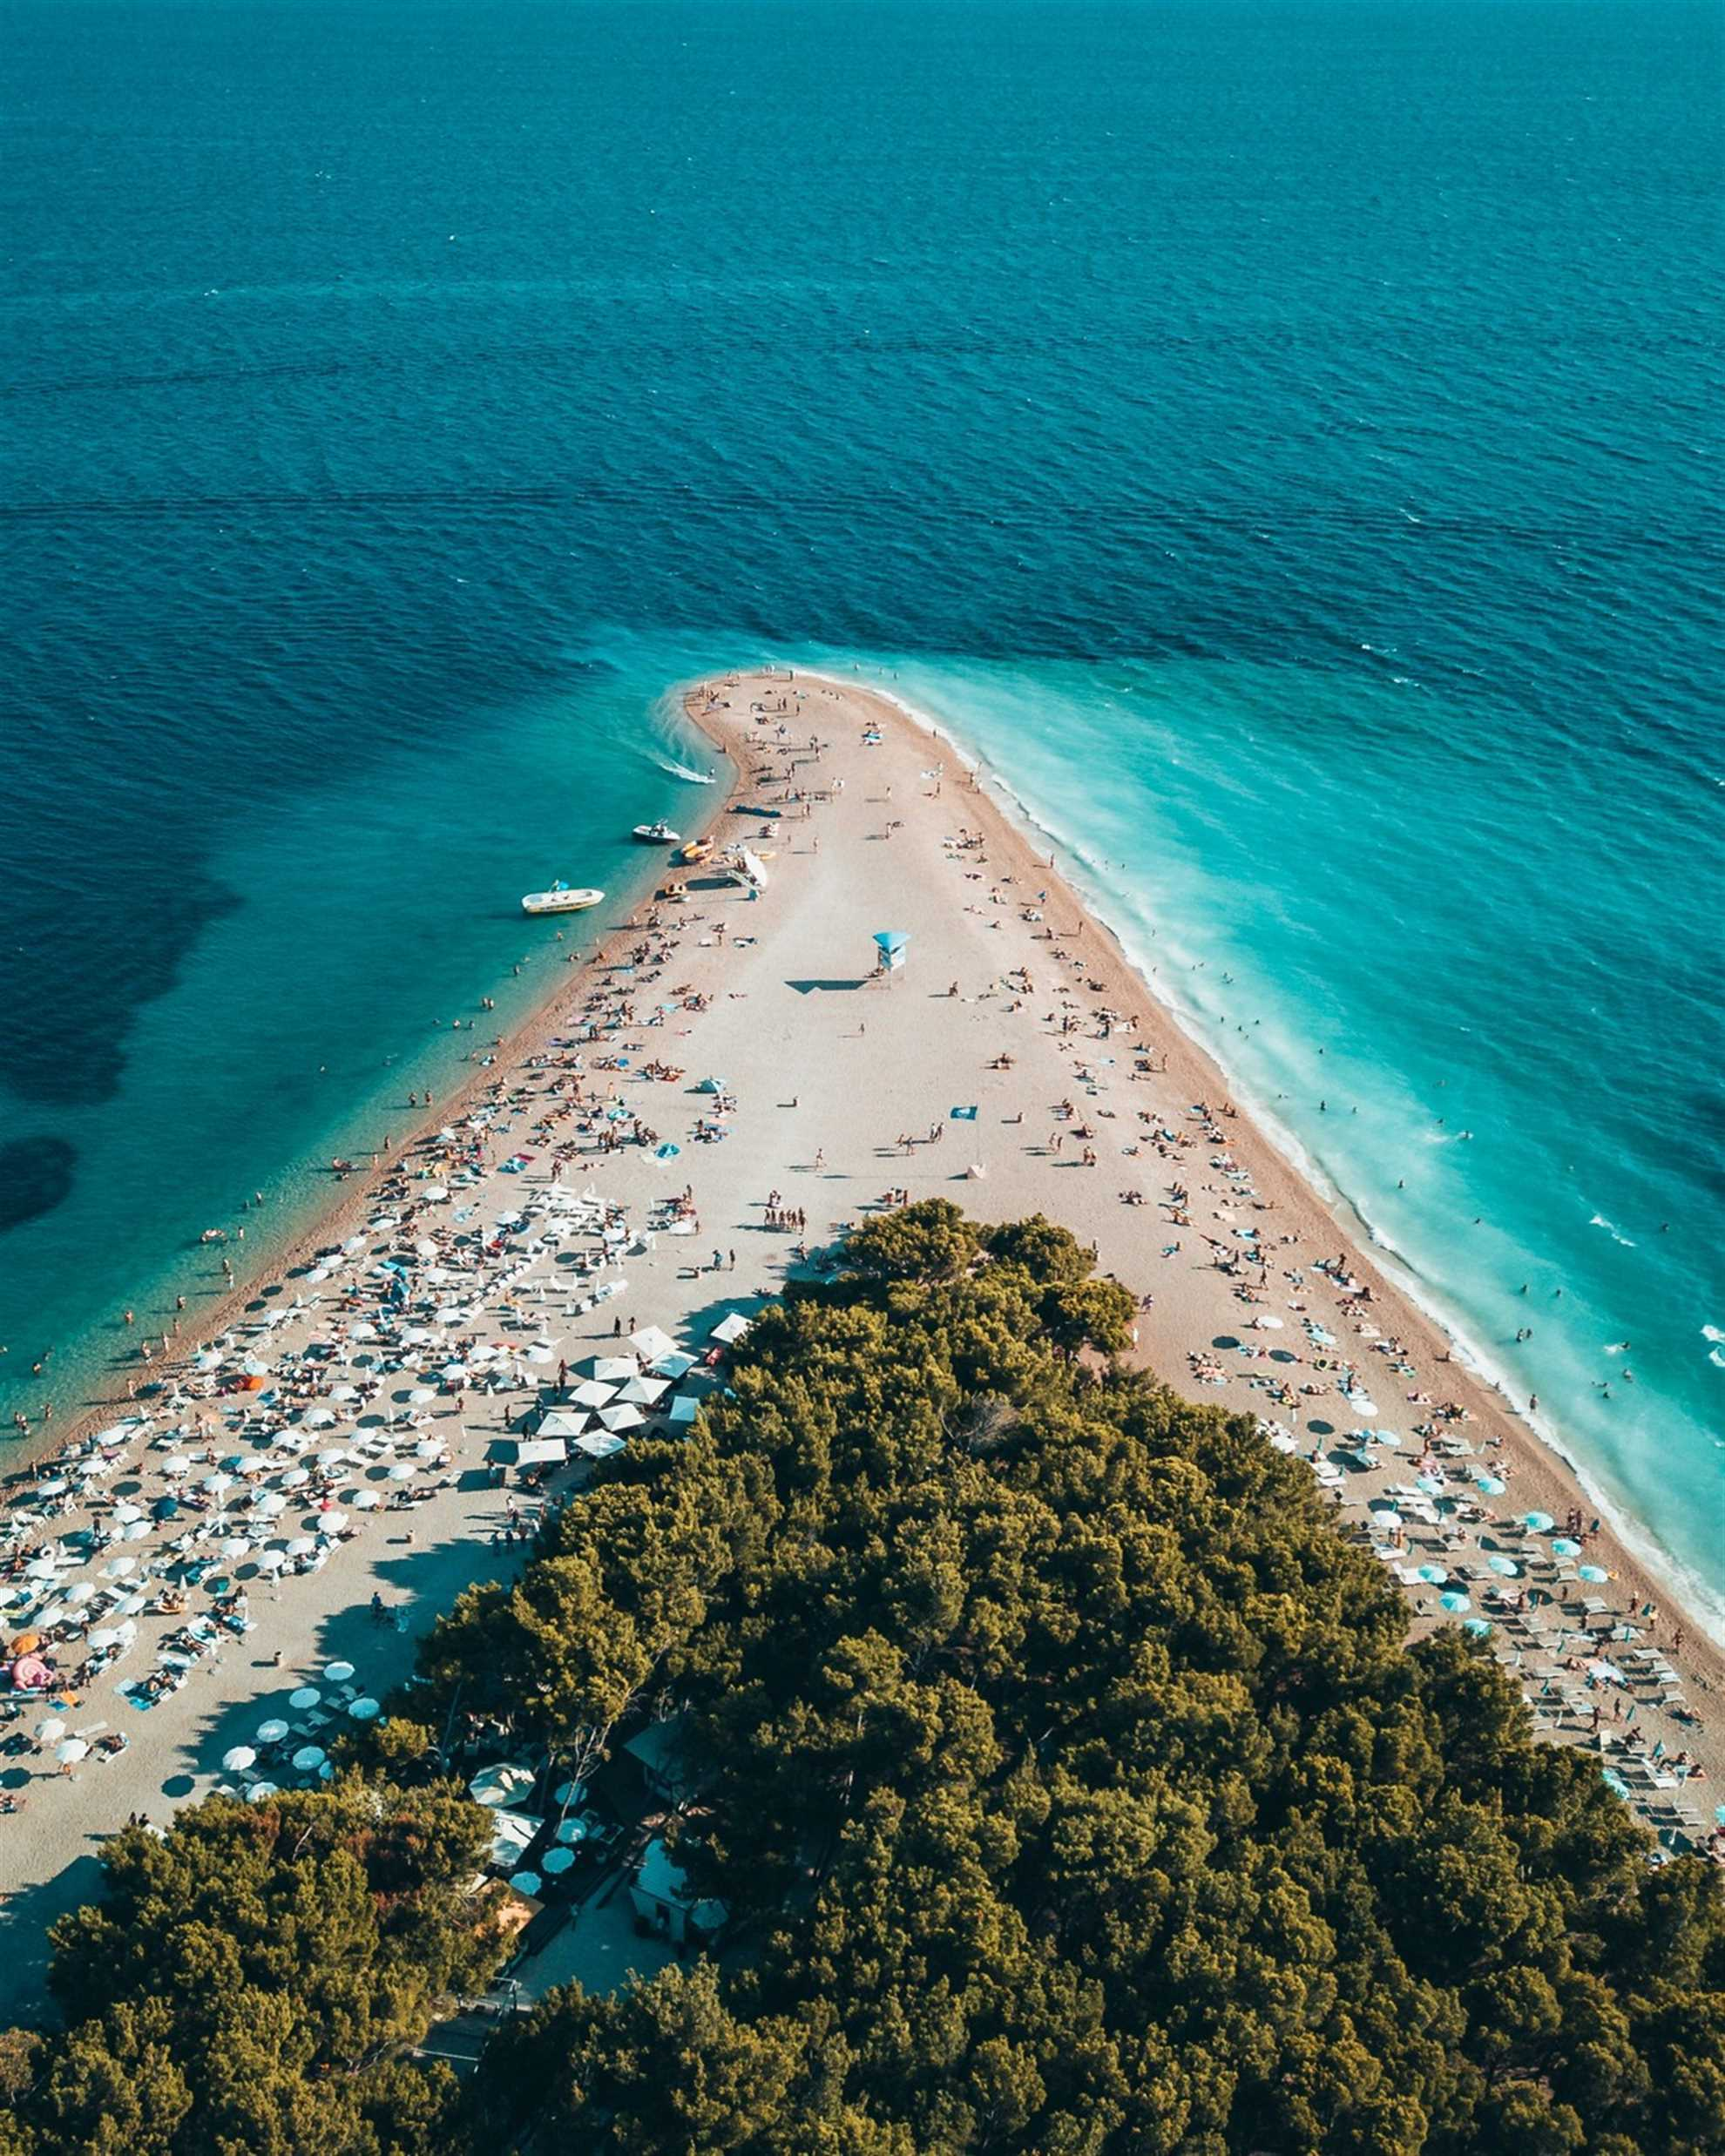 The Golden Horn Beach extends approximately 500 meters into the sea